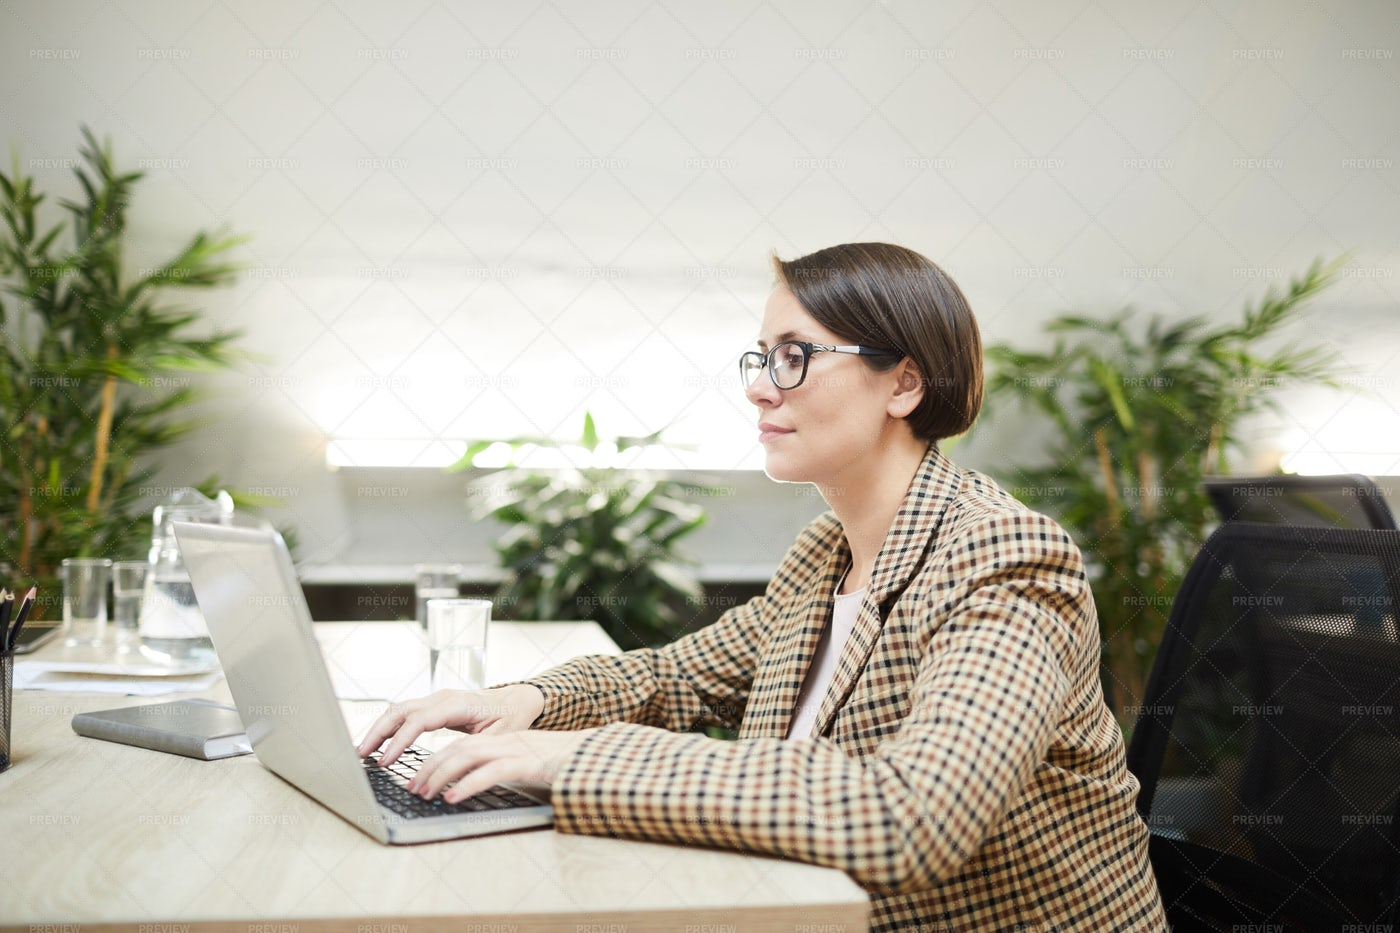 Contemporary Businesswoman Working...: Stock Photos